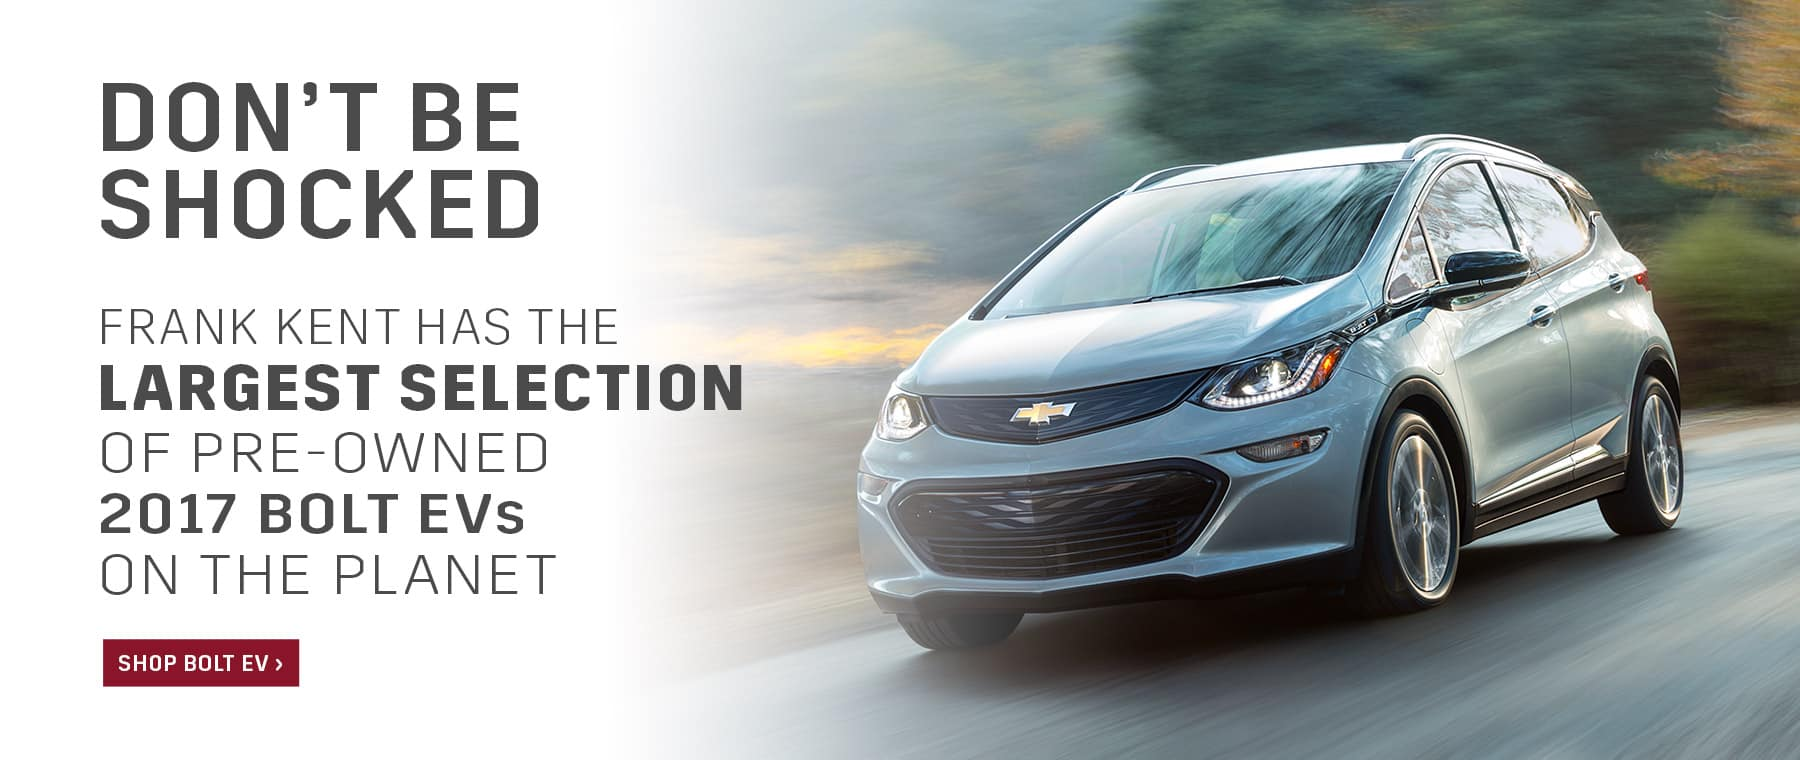 Frank Kent has the LARGEST SELECTION of 2017 Chevy Bolt EVs on the planet